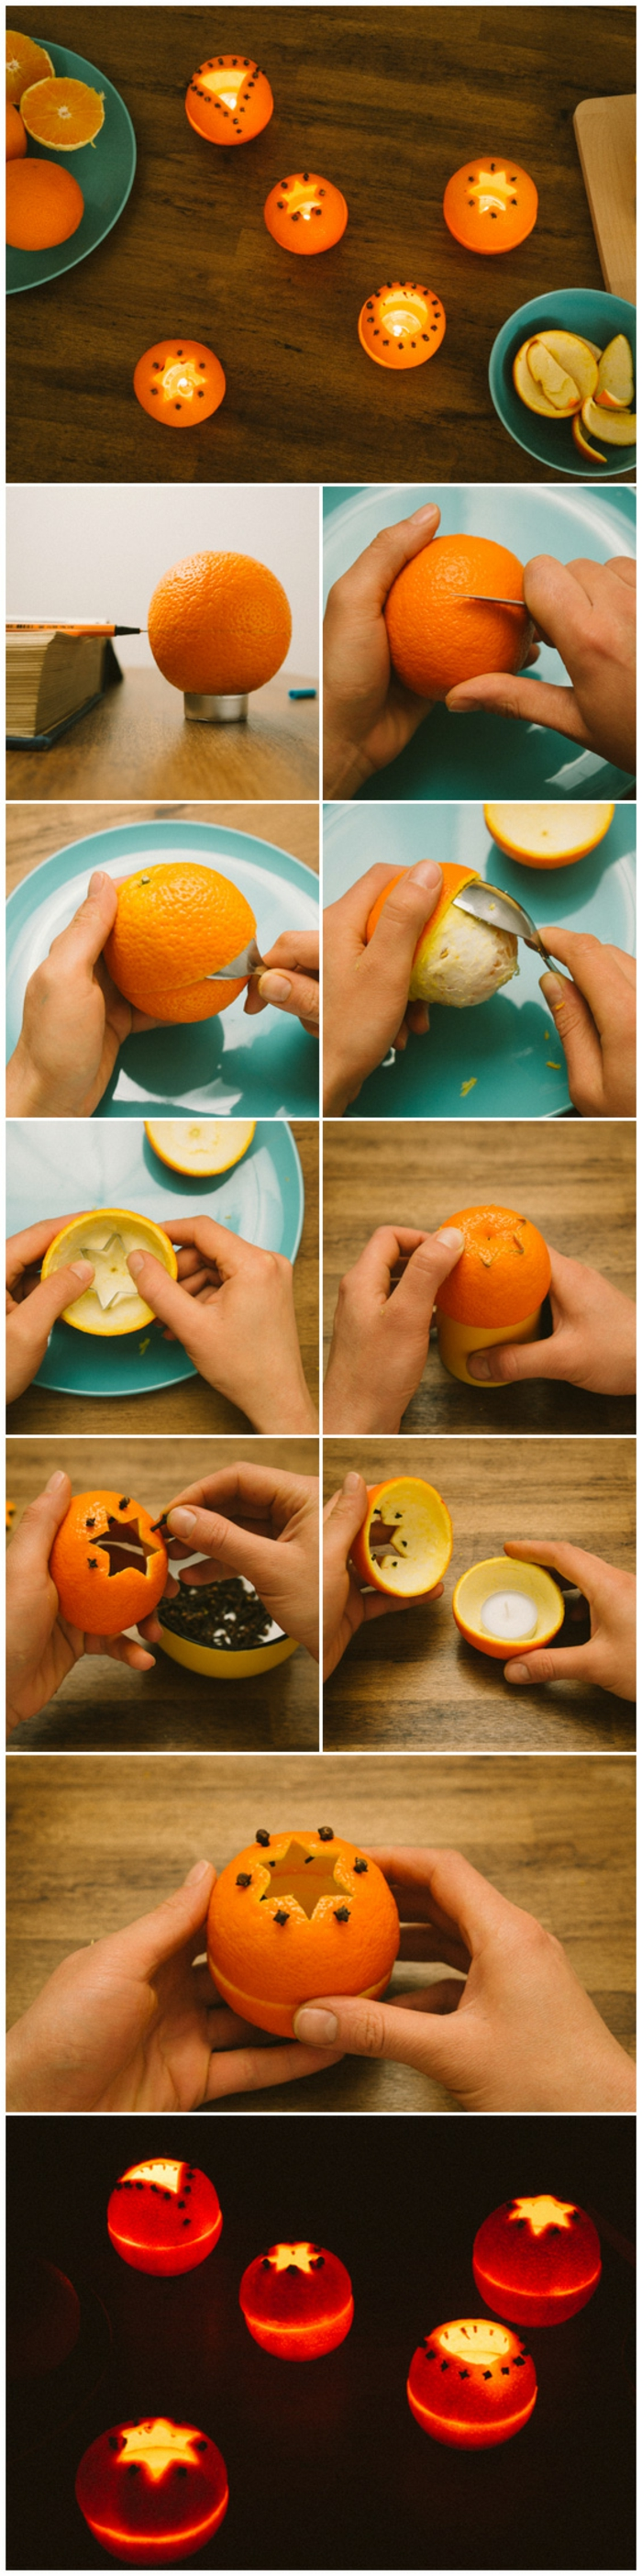 several lanterns made from hollowed oranges, a book and pen next to an orange, hands holding peeling and carving orange, hands cutting orange peel with cookie cutter and decorating it with spices, glowing decorated orange lanterns